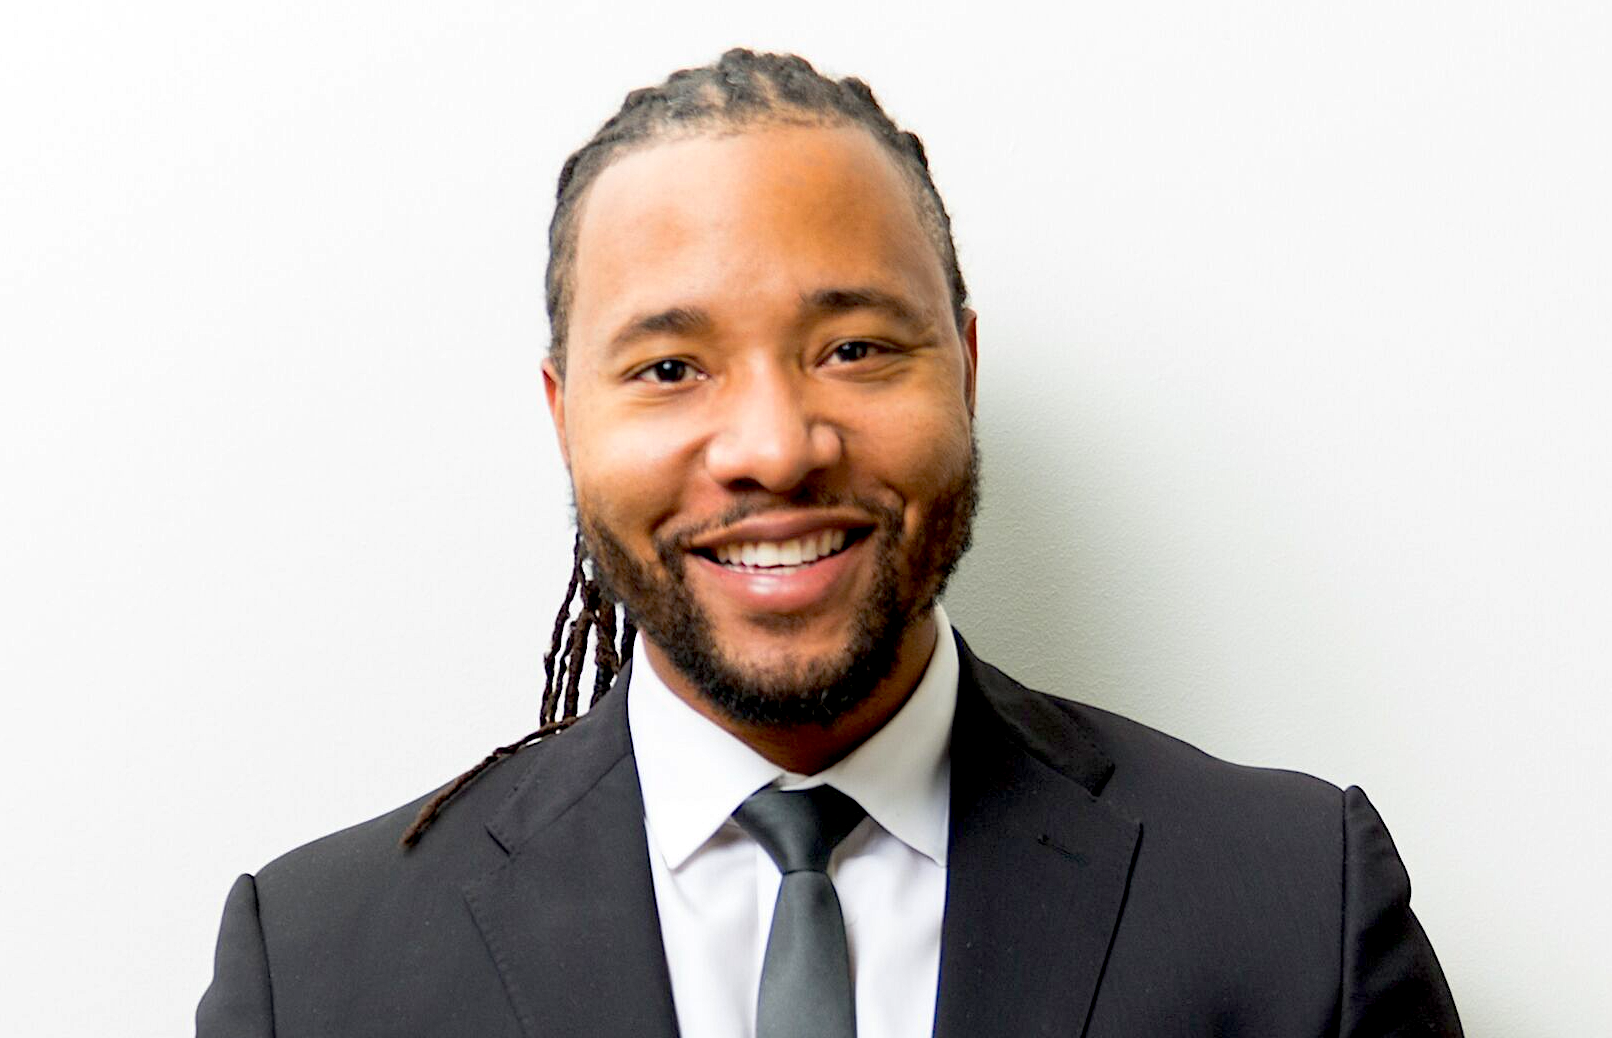 TechBirmingham's Deon Gordon talks technology and the future of Birmingham